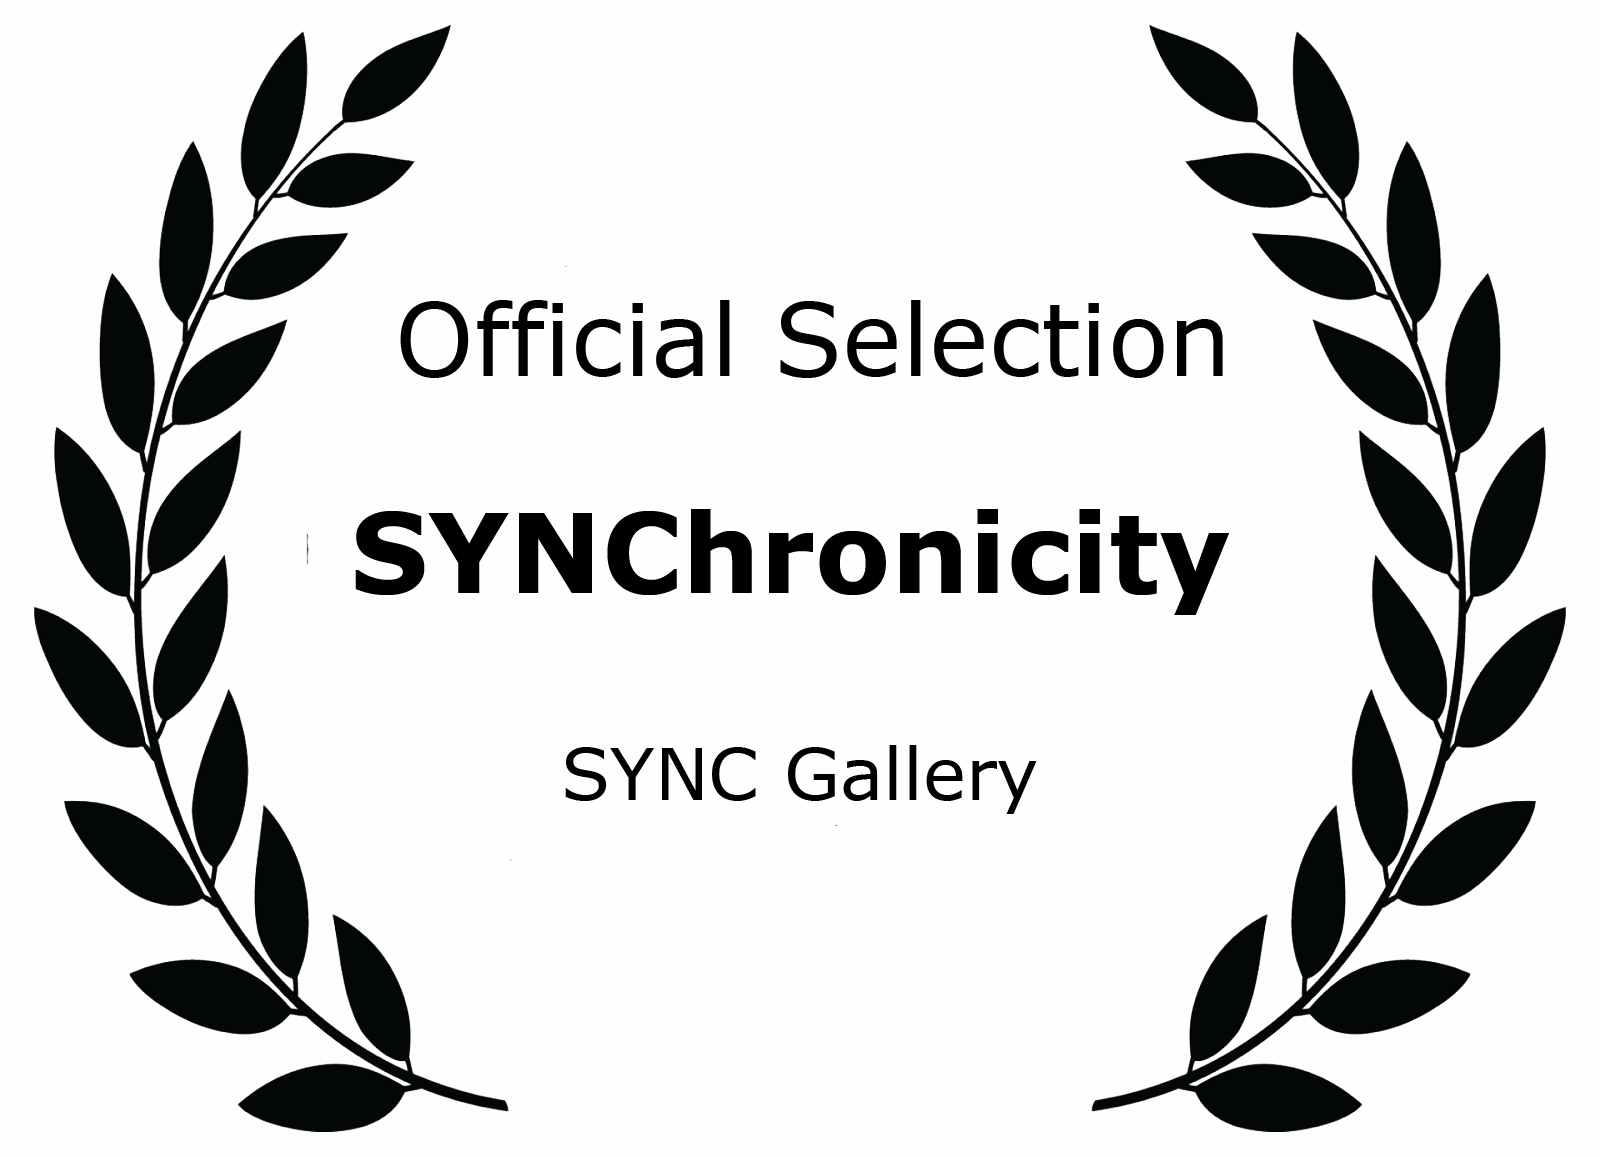 Official Selection SYNChronicity SYNC Gallery